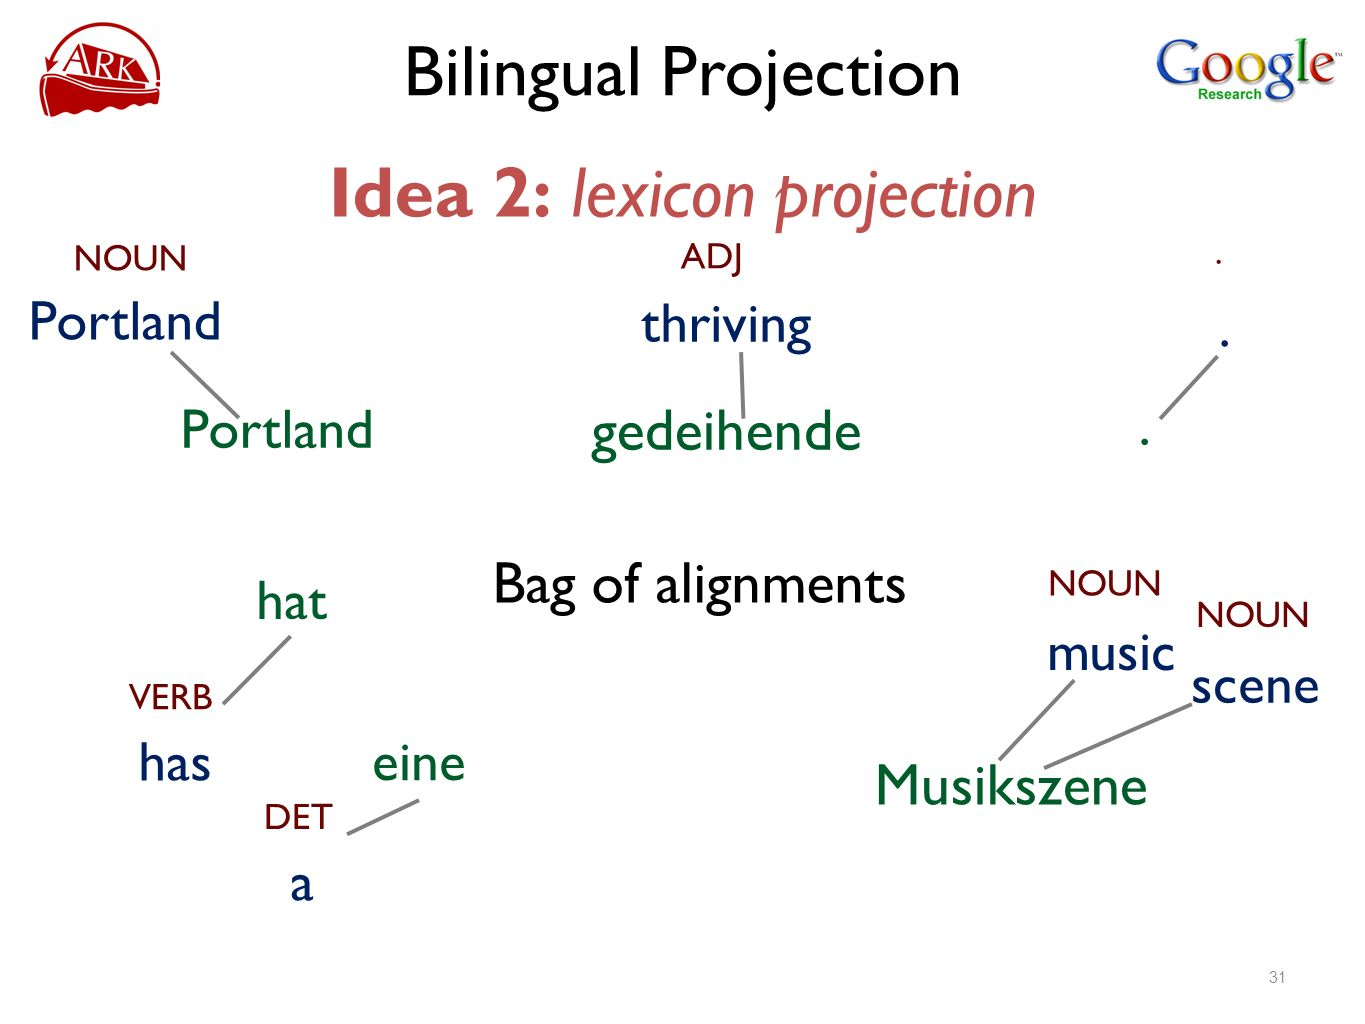 Bilingual Projection Idea 2: lexicon projection NOUN Portland ADJ thriving gedeihende VERB has hat DET a eine NOUN scene Musikszene NOUN music... Bag